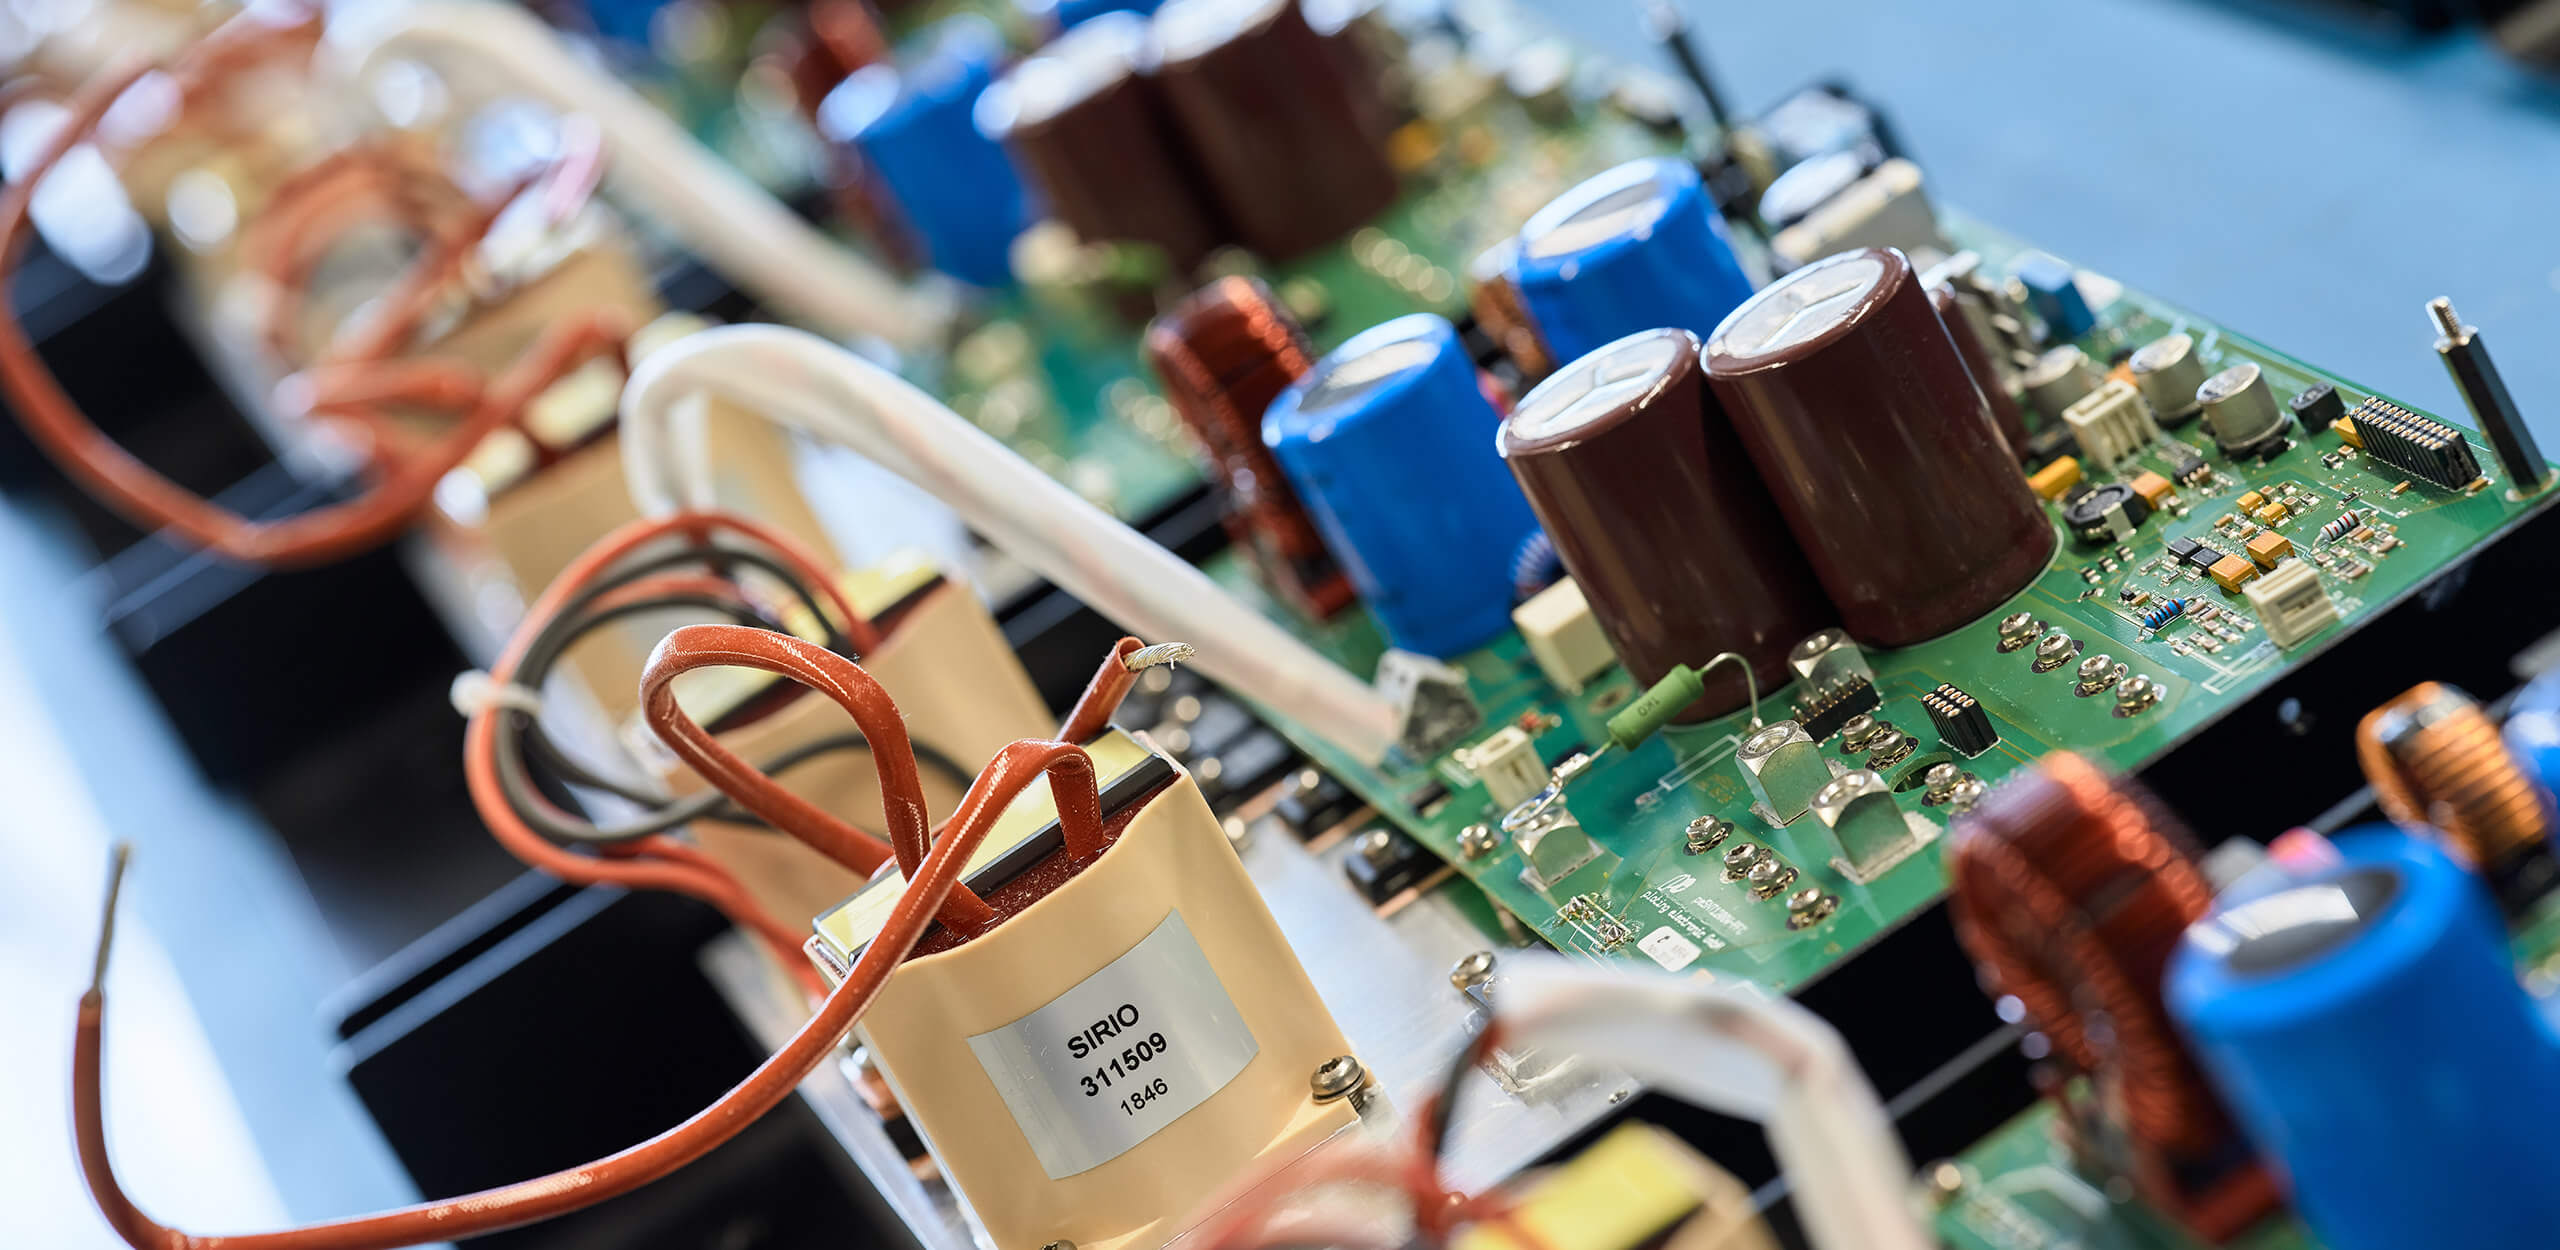 Development - Thinking ahead with the know-how of plating electronic